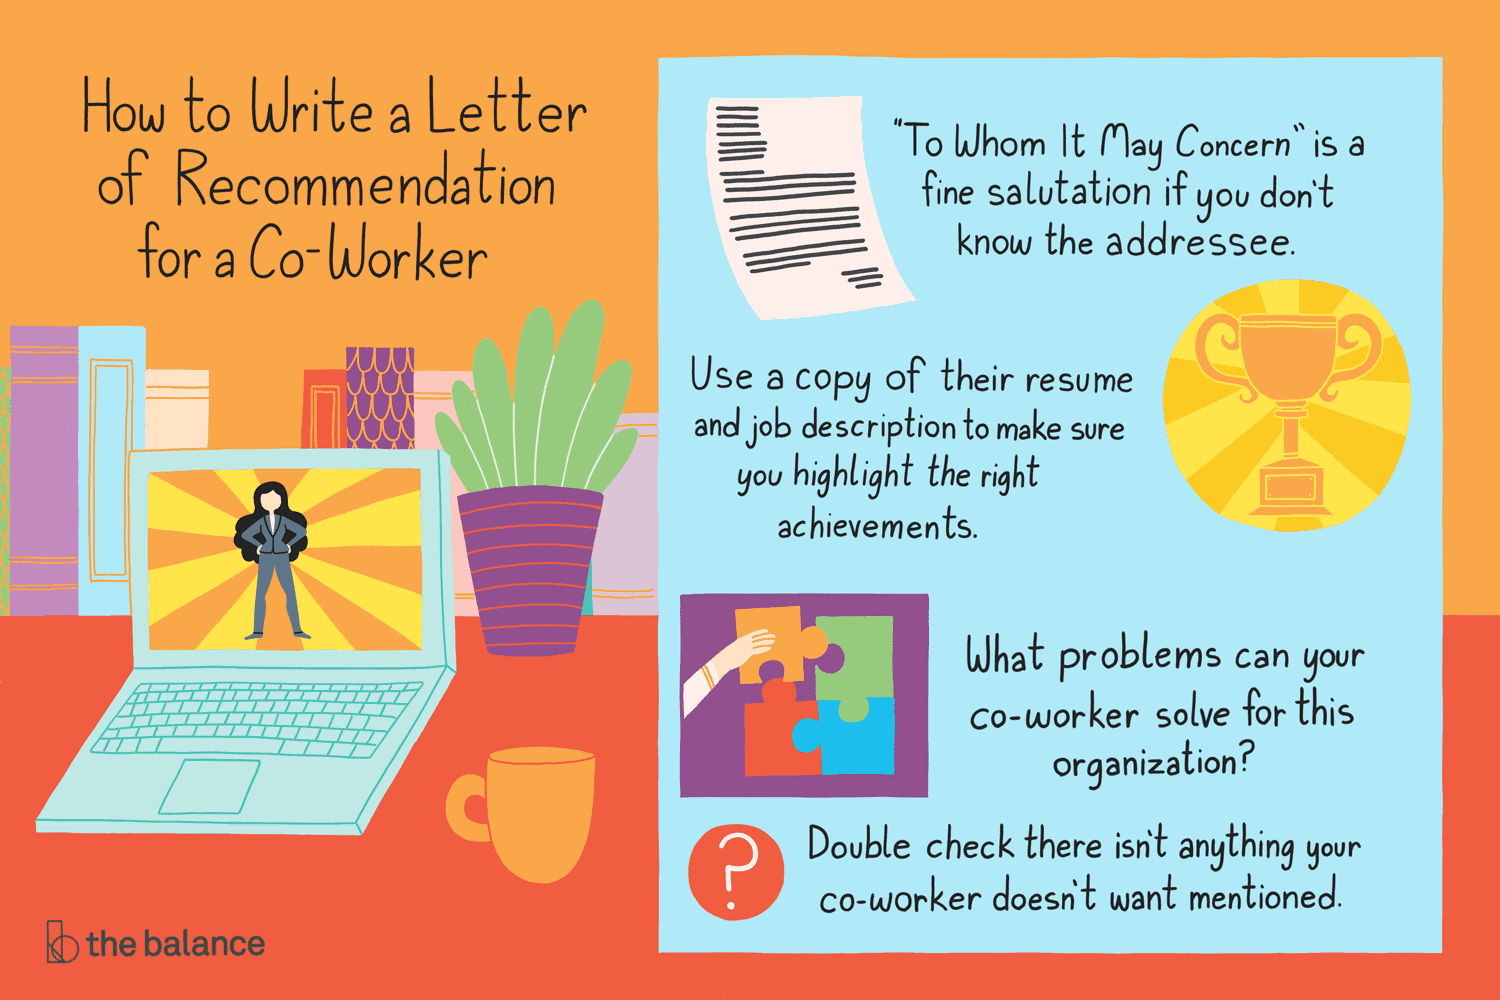 How to Write a Letter of Recommendation for a Co-Worker